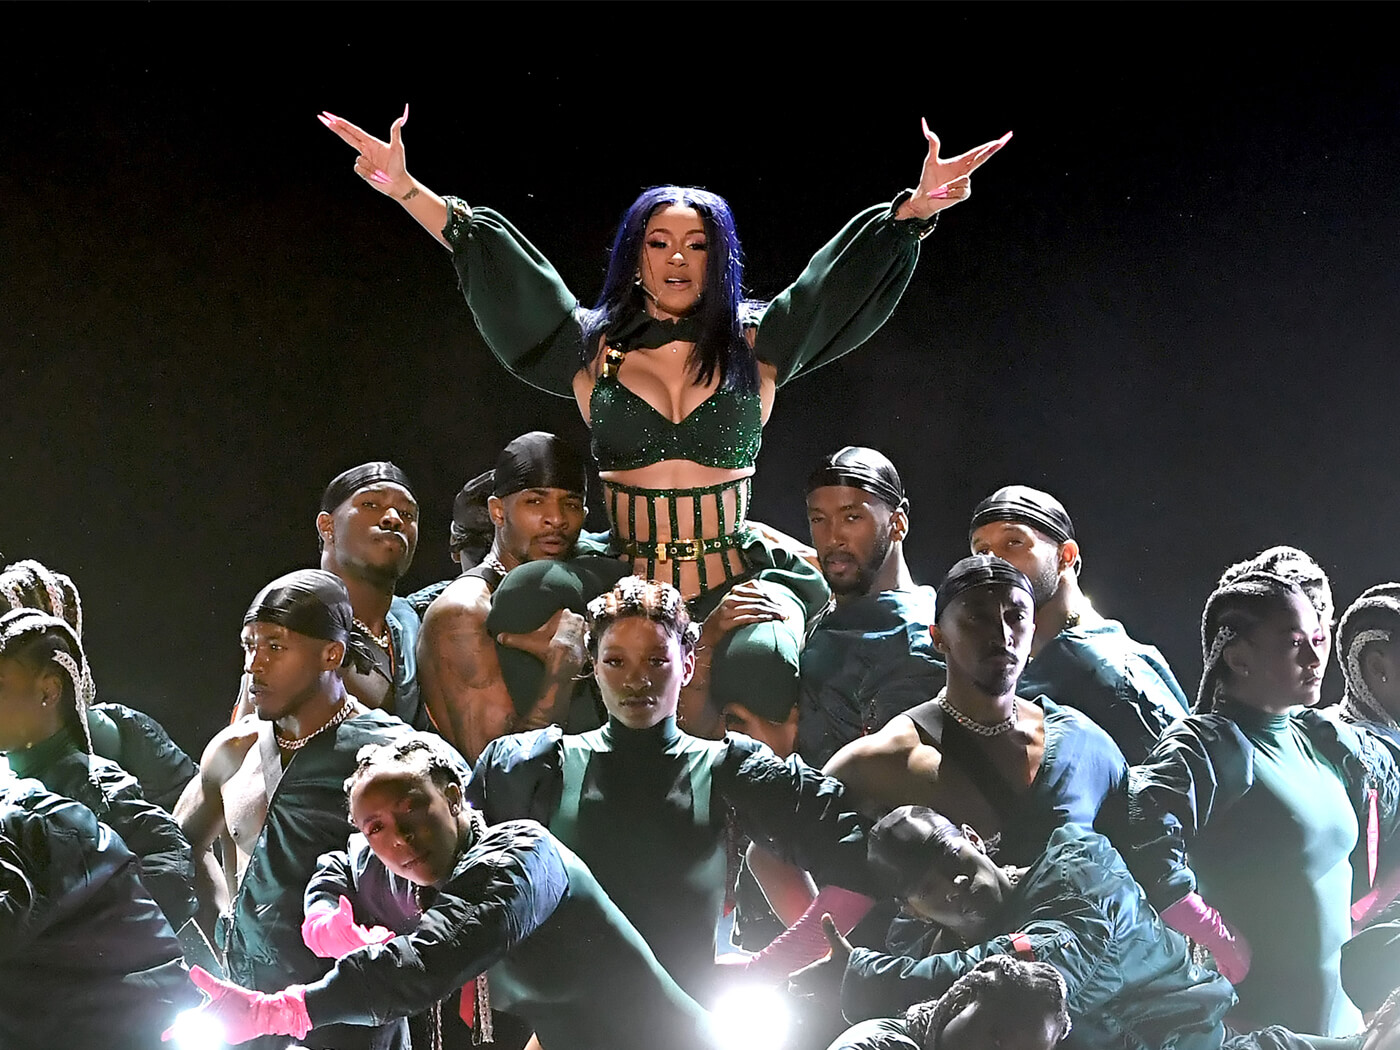 Watch performances by Cardi B Lil Nas X and more at the BET 1400x1050